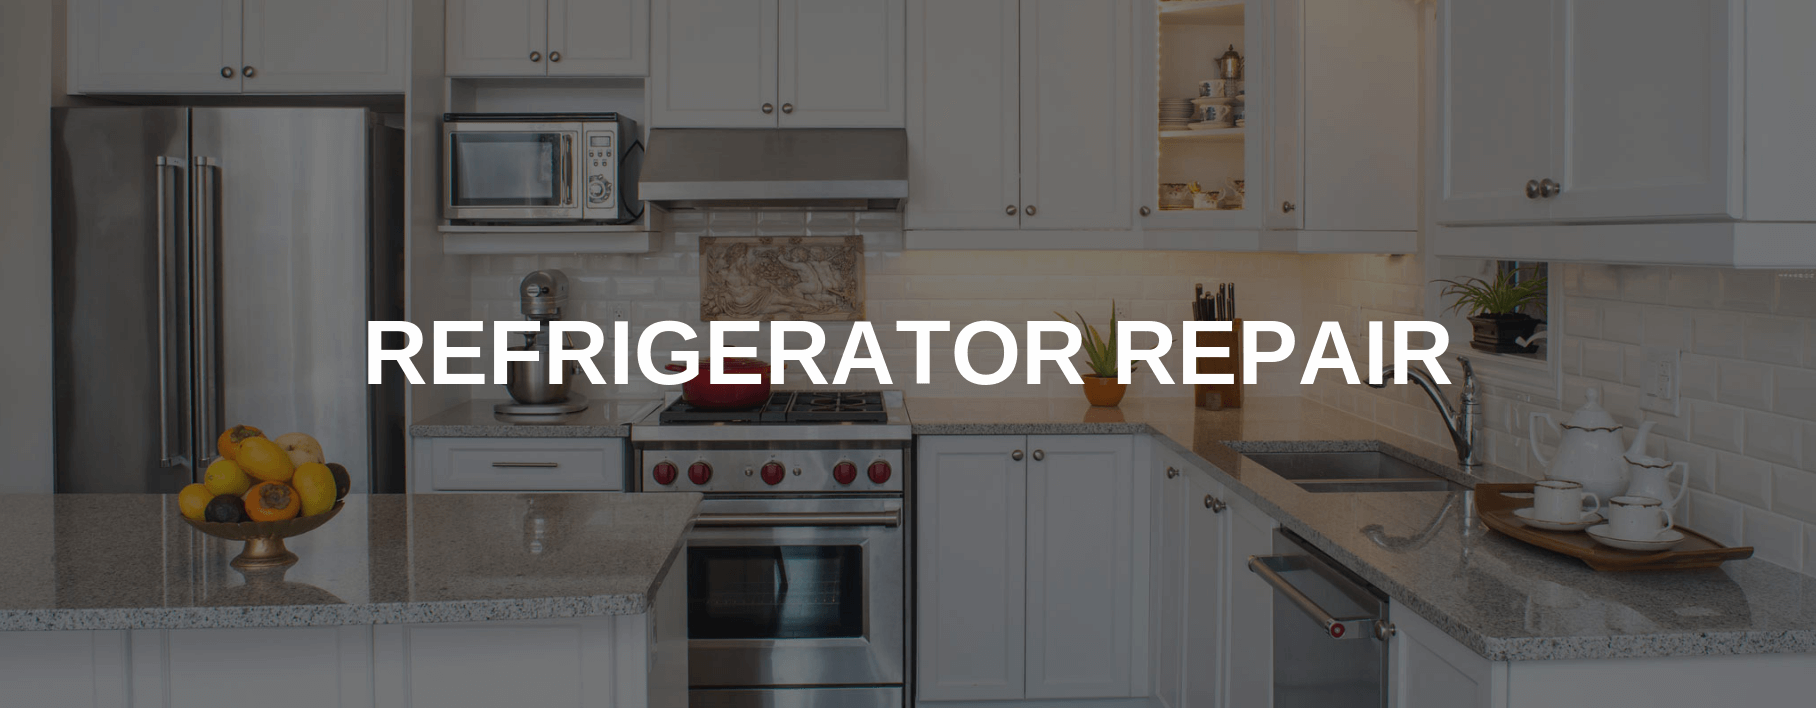 refrigerator repair orange